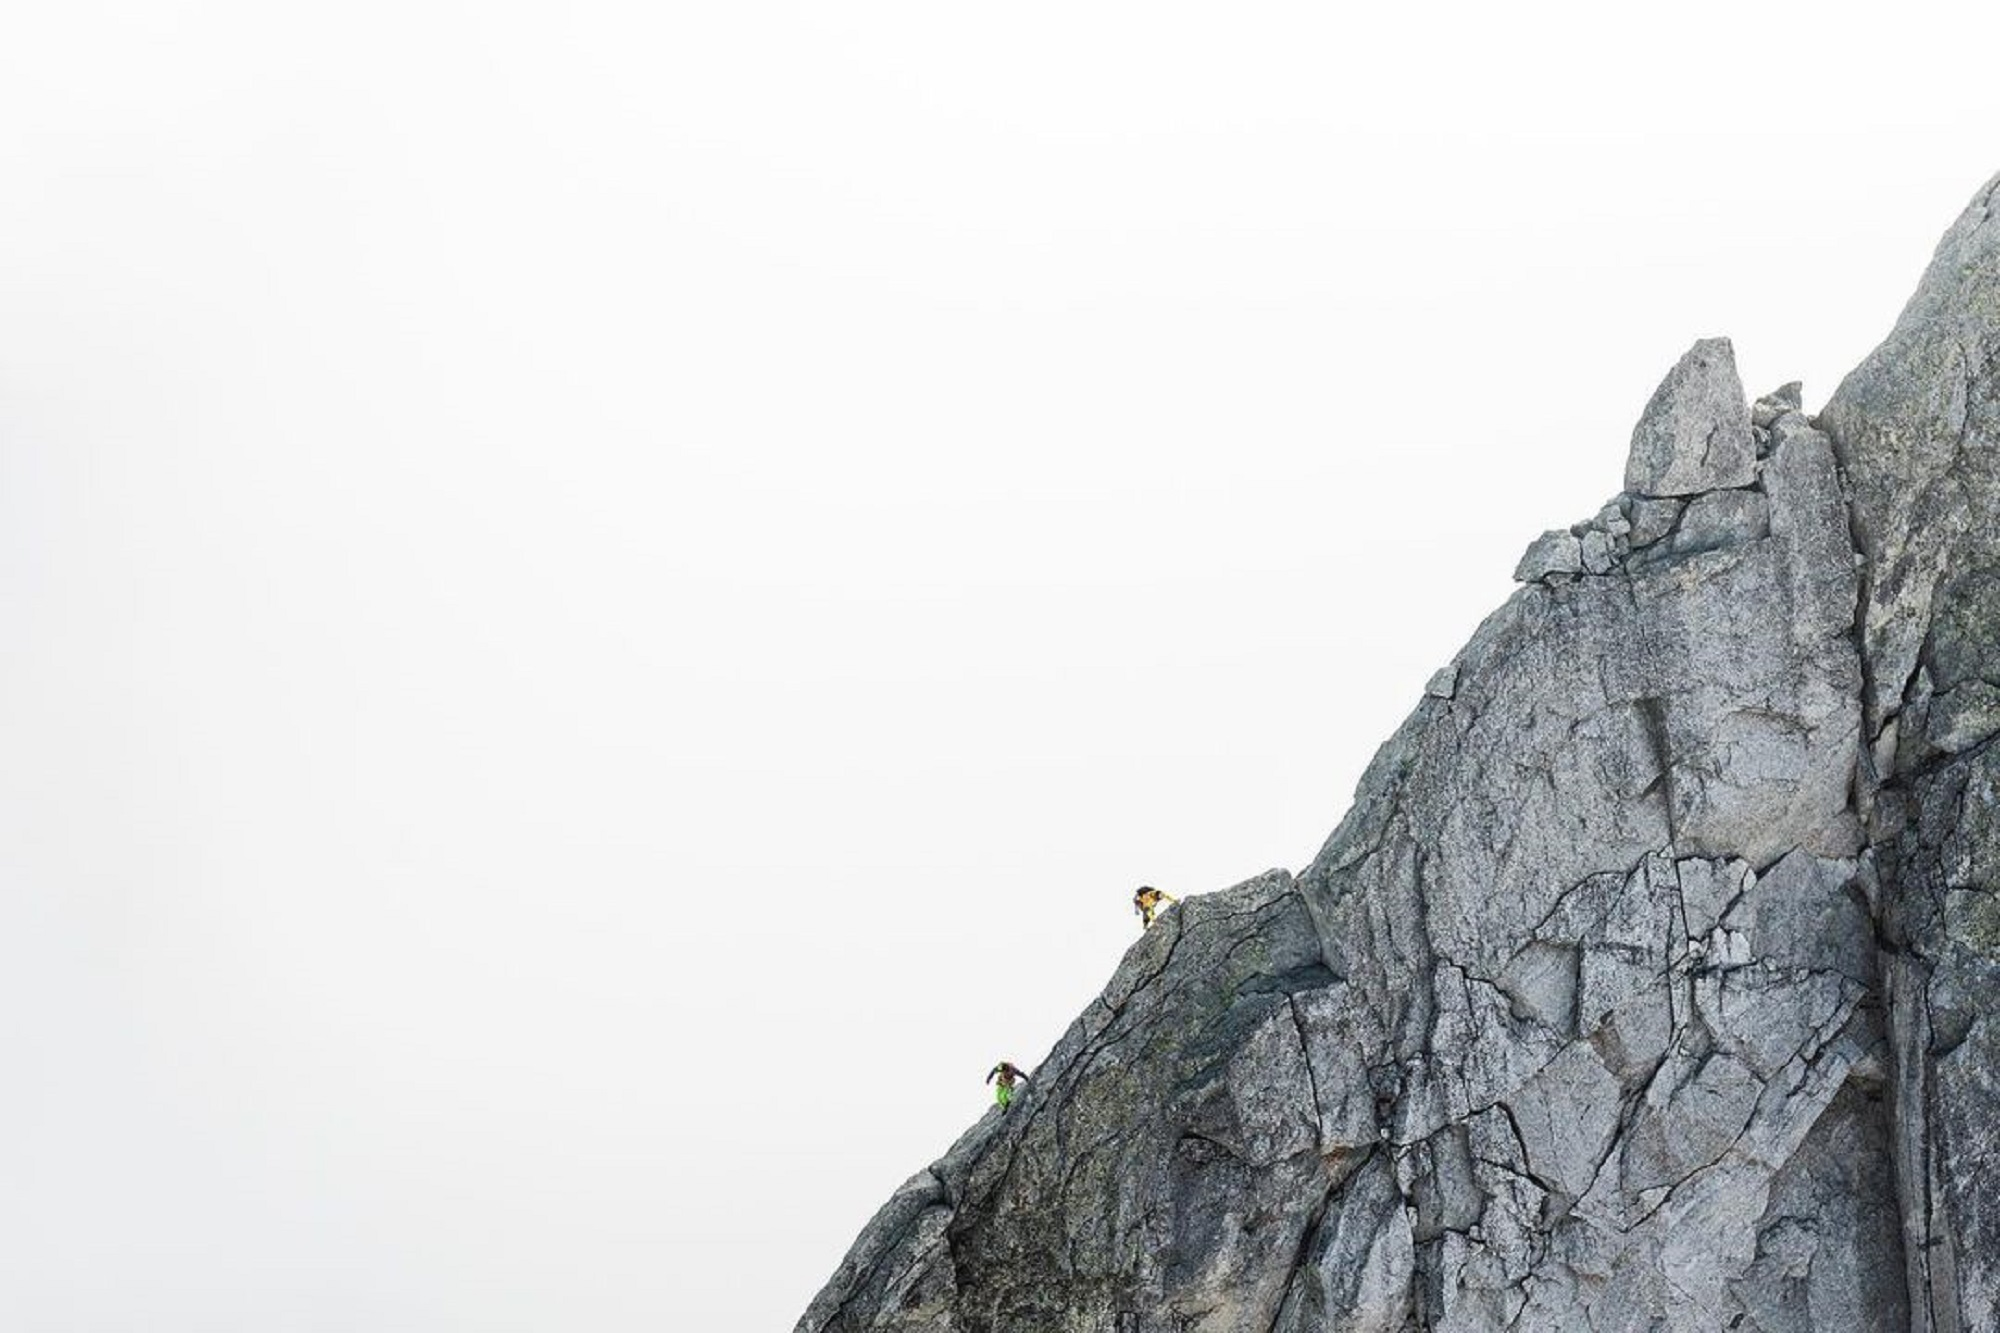 north 6 alpinists begin the journey to climb all six great north faces in the Alps